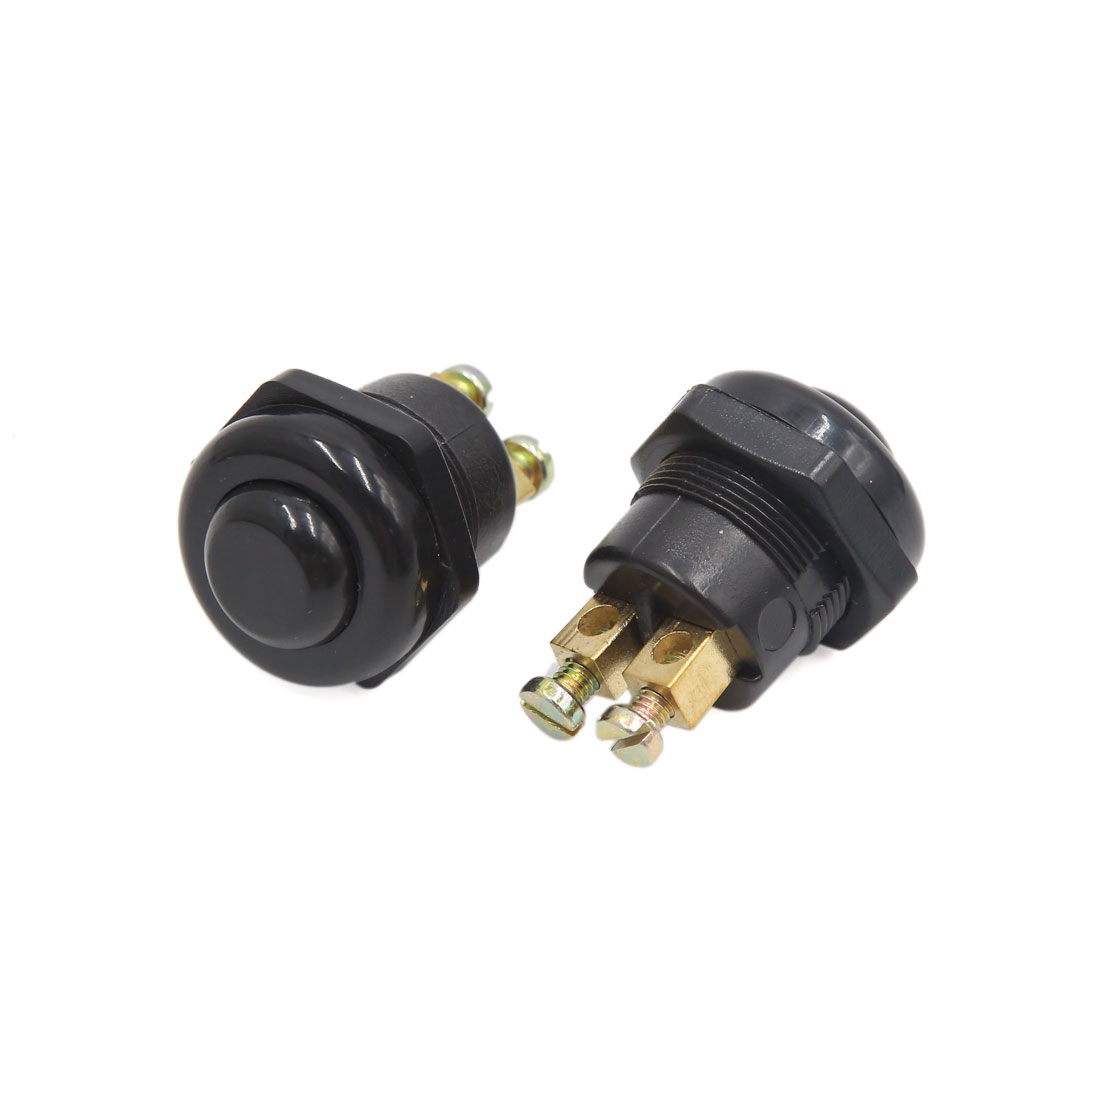 2pcs DC 12V Black Round Cap Momentary Press Push Button Switch for Car Vehicle